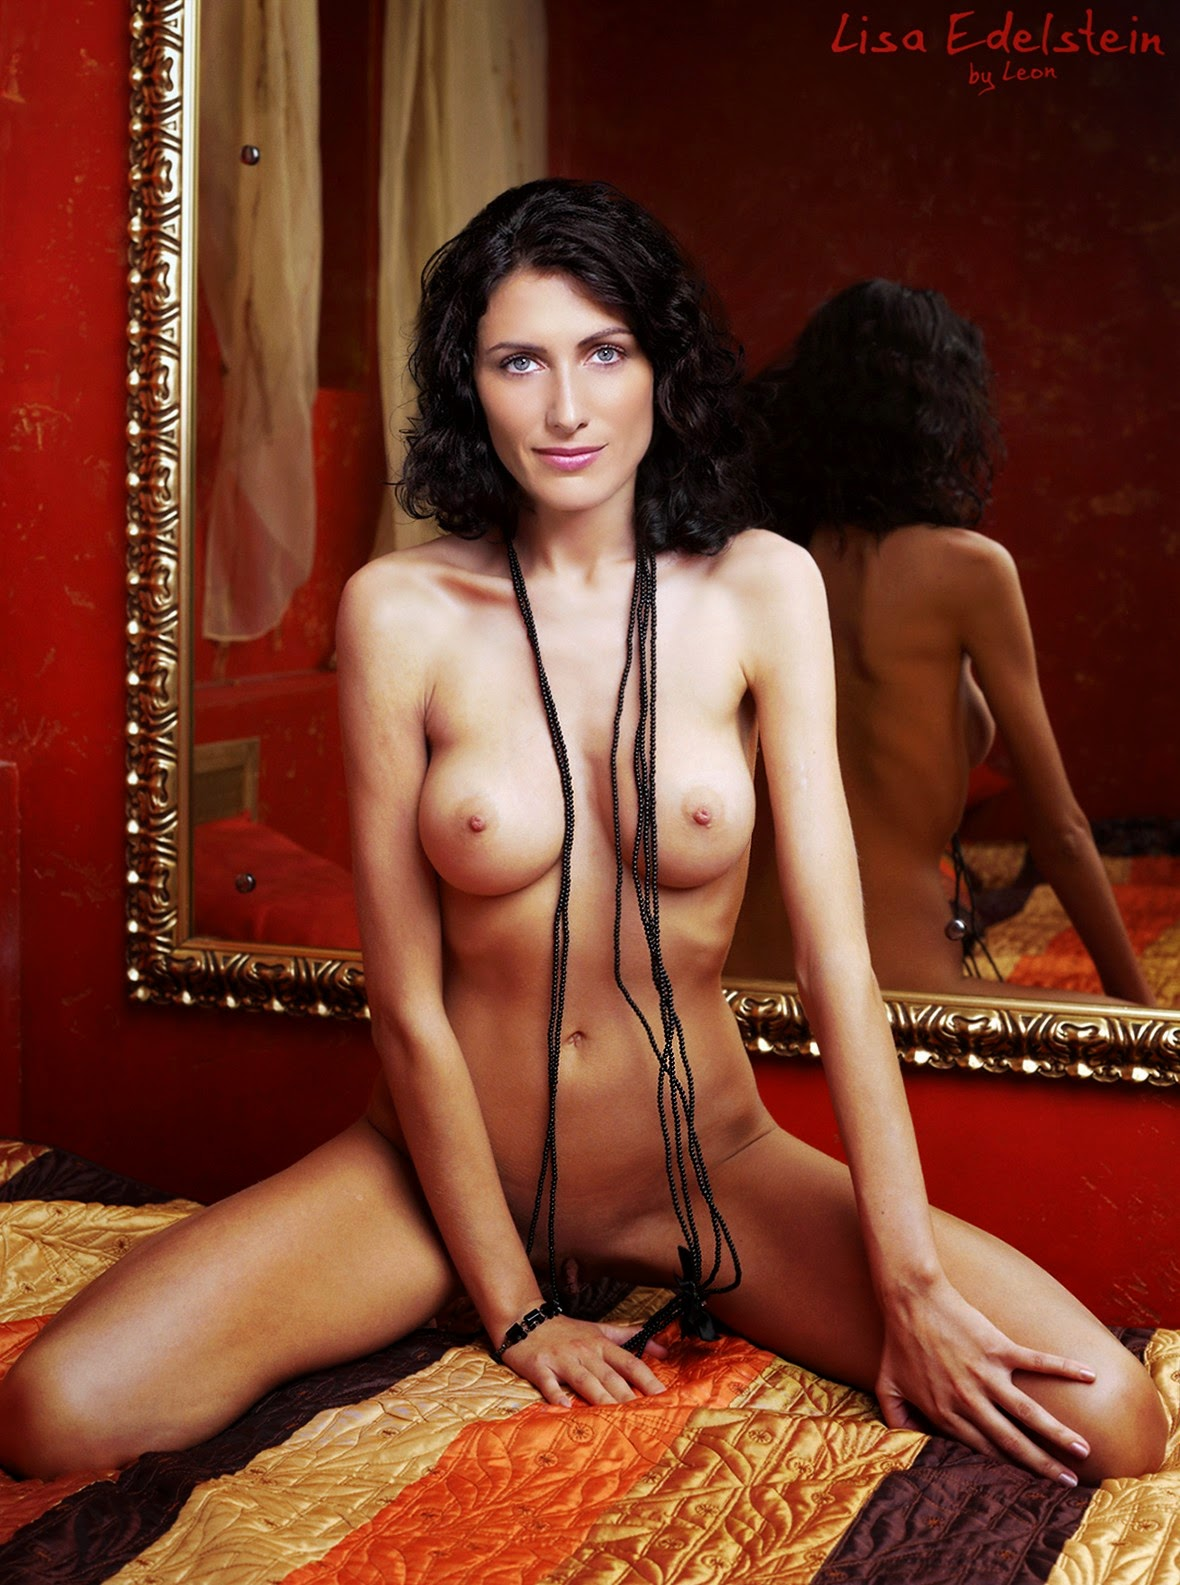 Topless lisa edelstein